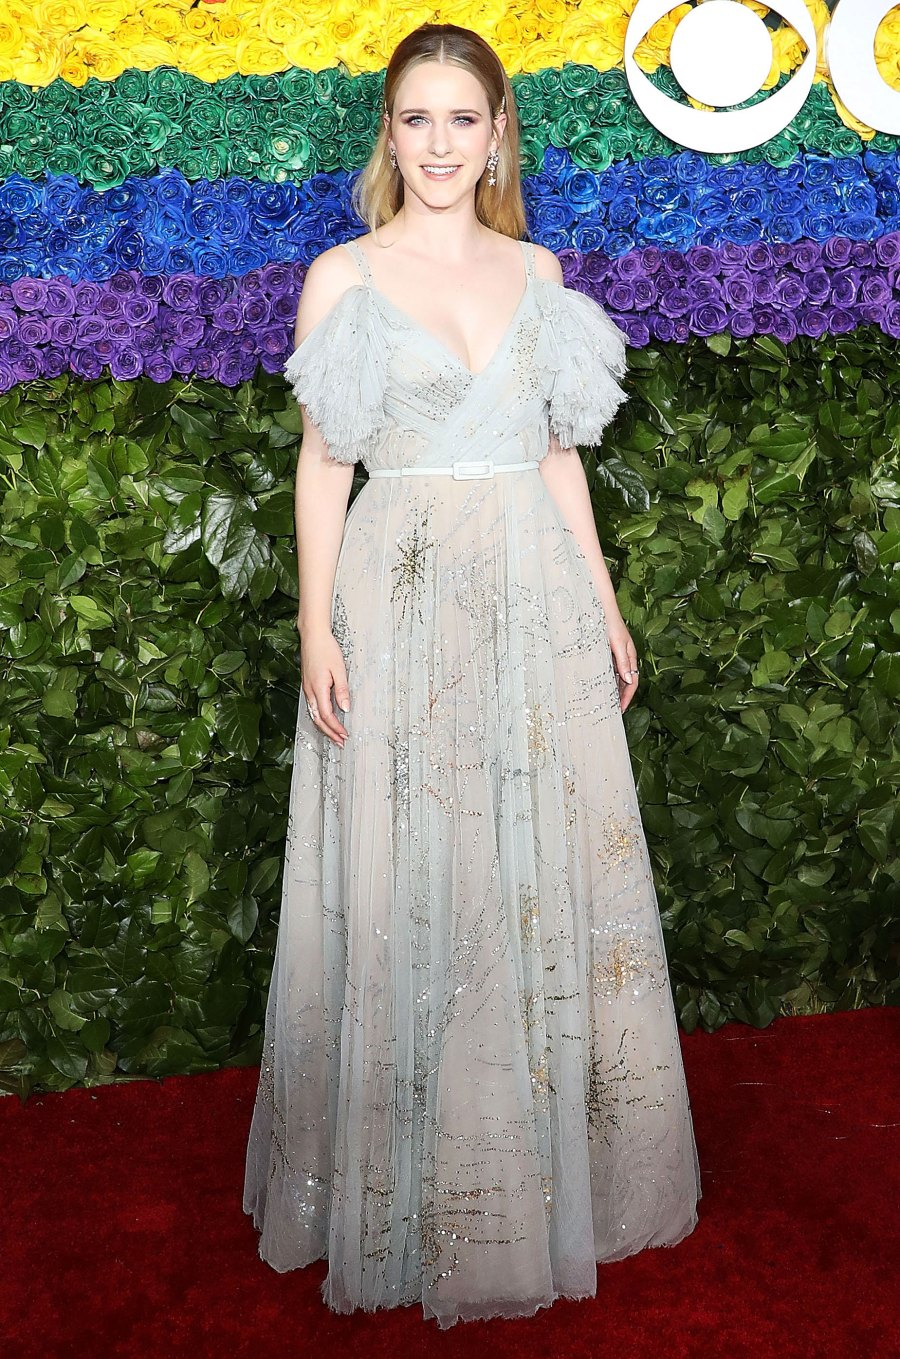 The Marvelous Miss Brosnahan looked more like a good witch with this dress and her new blonde locks.